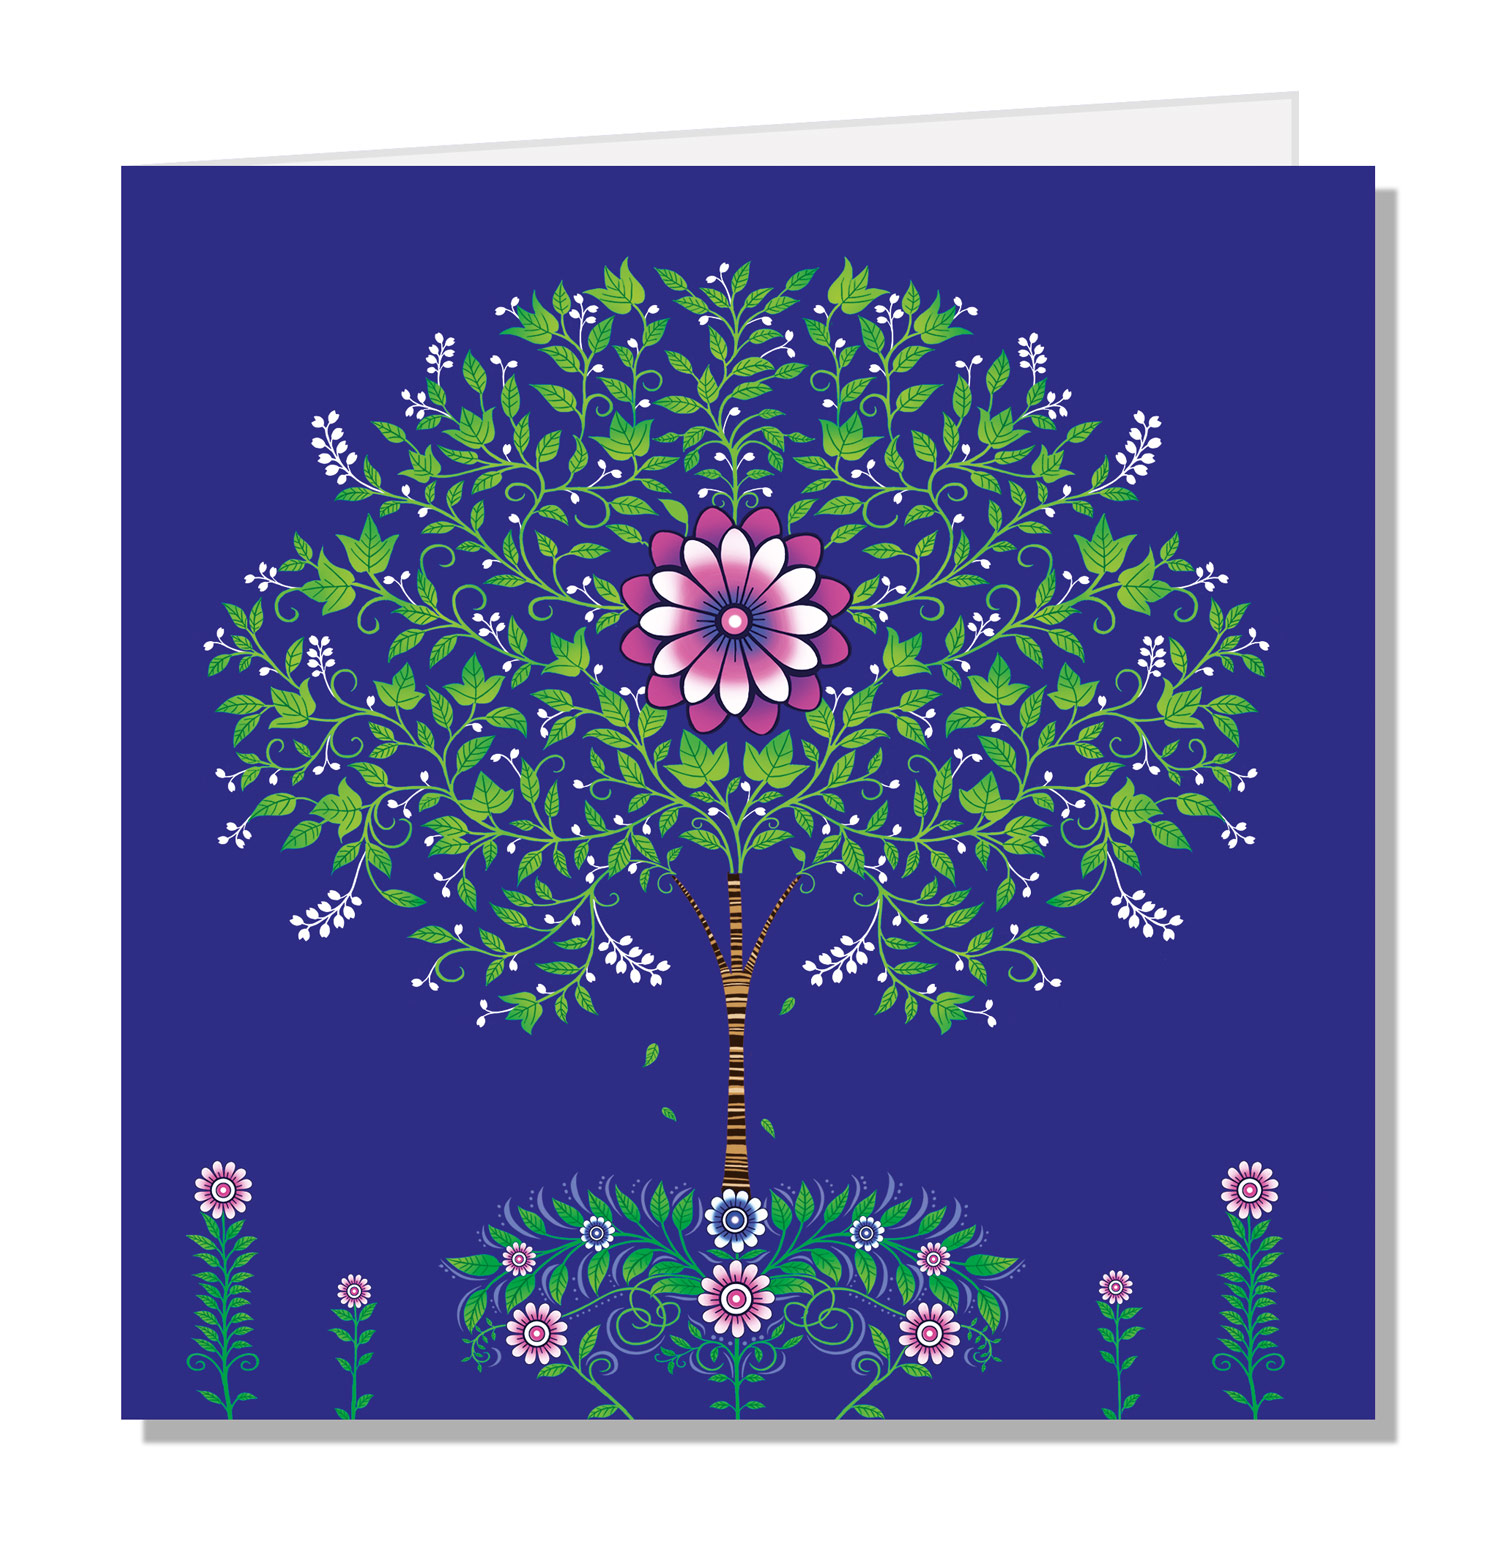 145mm Square Greeting Card